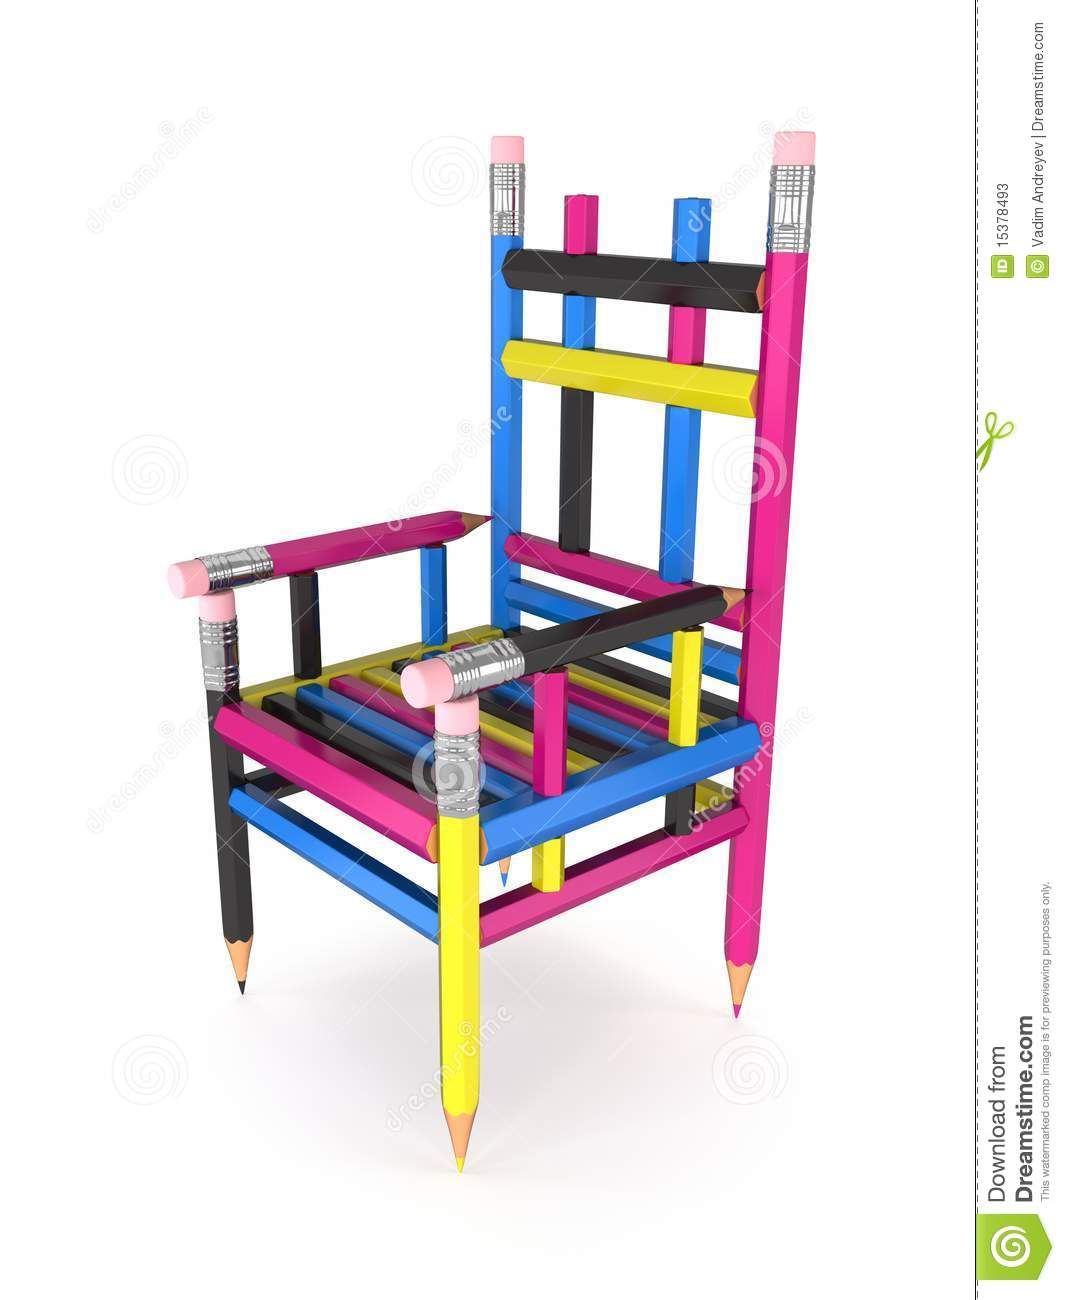 Attrayant Download CMYK Pencil Chair Stock Illustration. Illustration Of Creativity    15378493